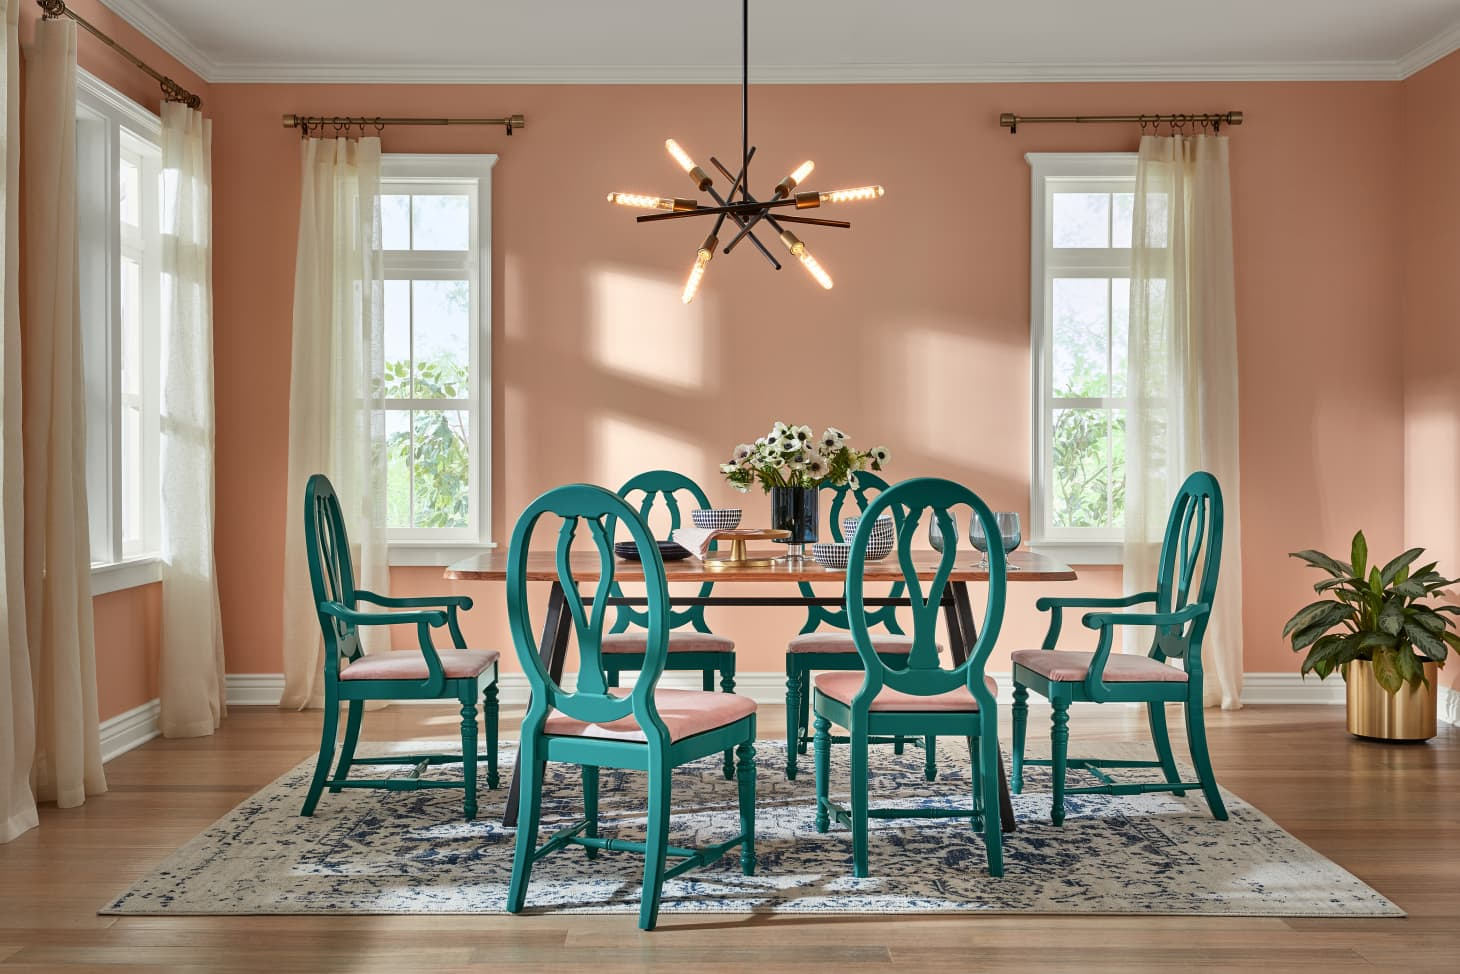 2020 Color Trends Home.Hgtv Home By Sherwin Williams 2020 Color Of The Year